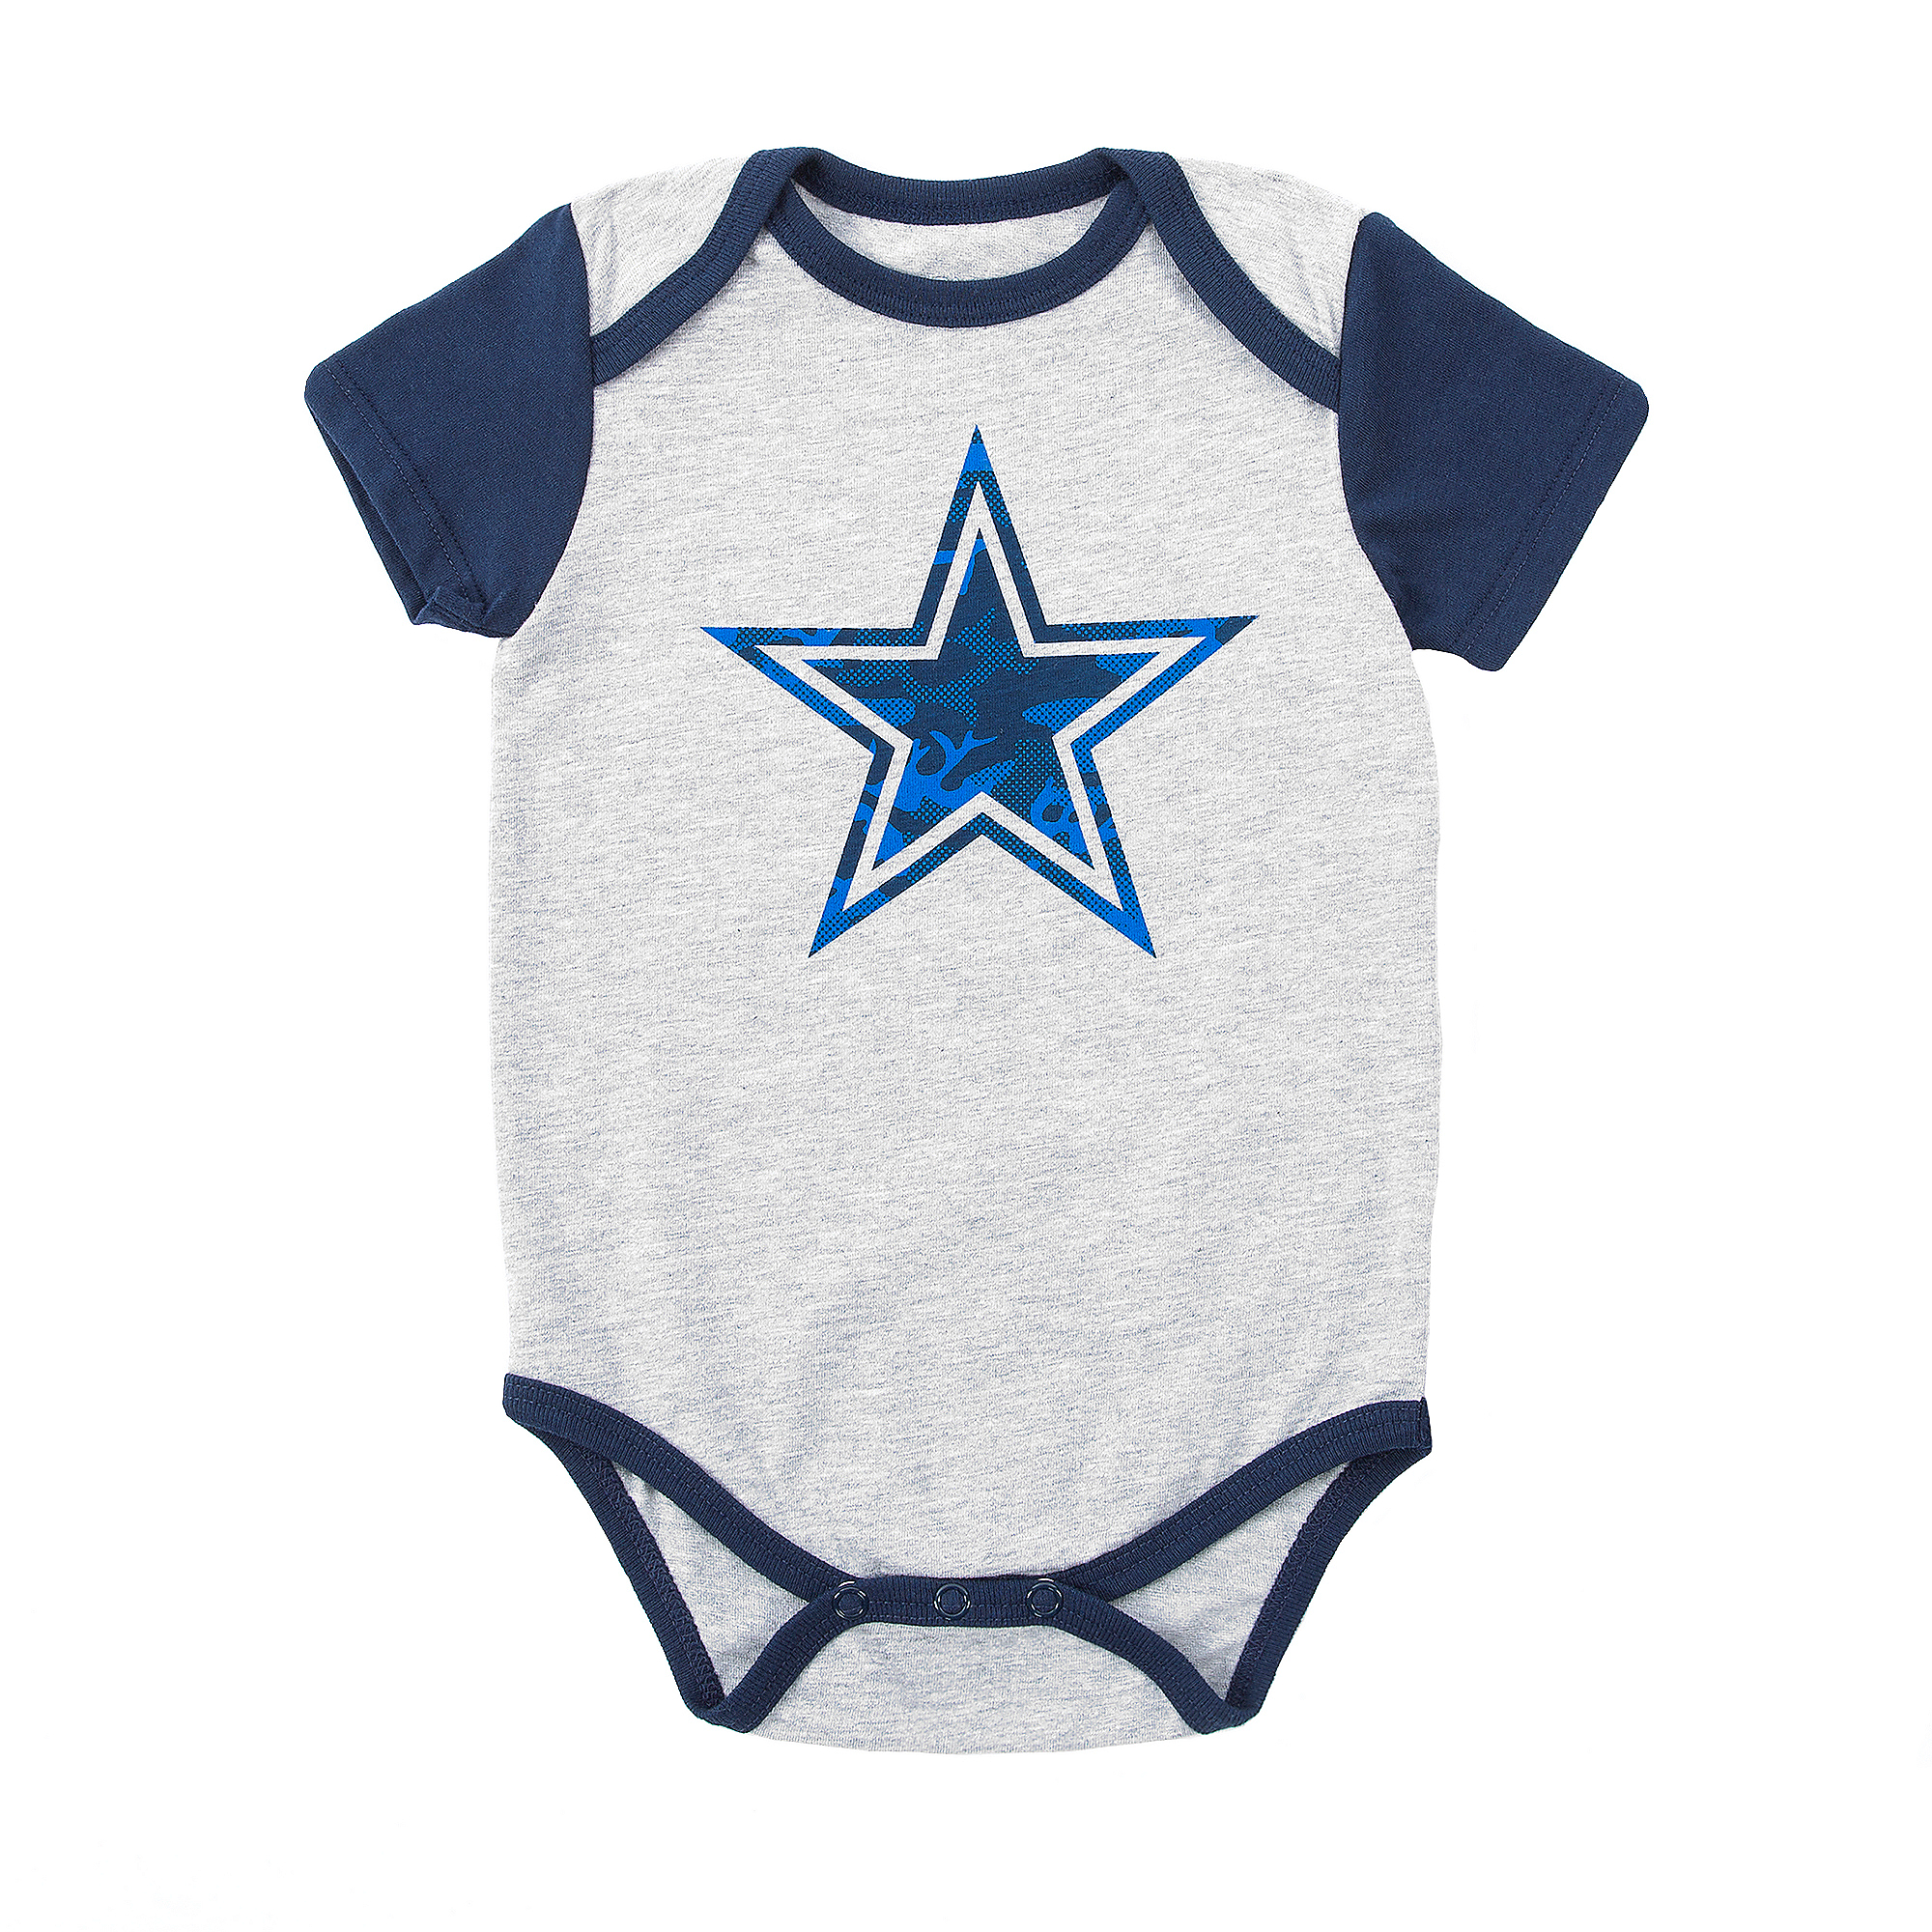 296db7fa6bb Dallas Cowboys Infant Vito 2-Pack Bodysuit Set | Dallas Cowboys Pro Shop